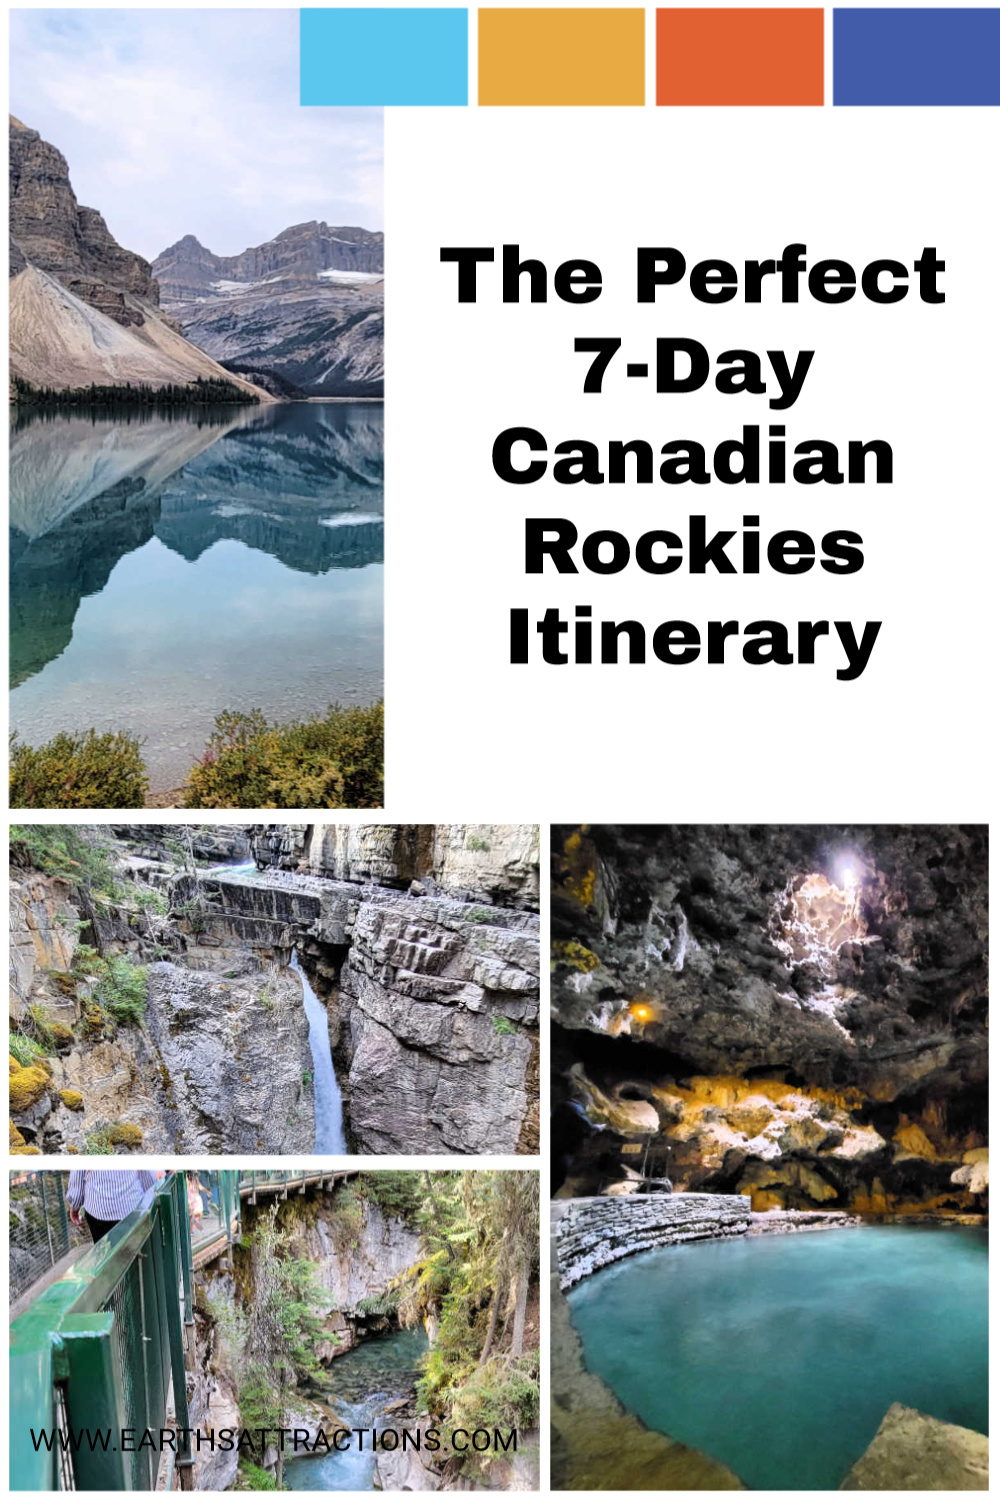 Here's the perfect 7-day Canadian Rockies itinerary by a local. Discover what to do in Bannf and Jasper in 7 days! #canada #canadianrockies #rockies #outdoor #jasper #banff #northamerica #northamericatravel #canadatravel #traveldestinations